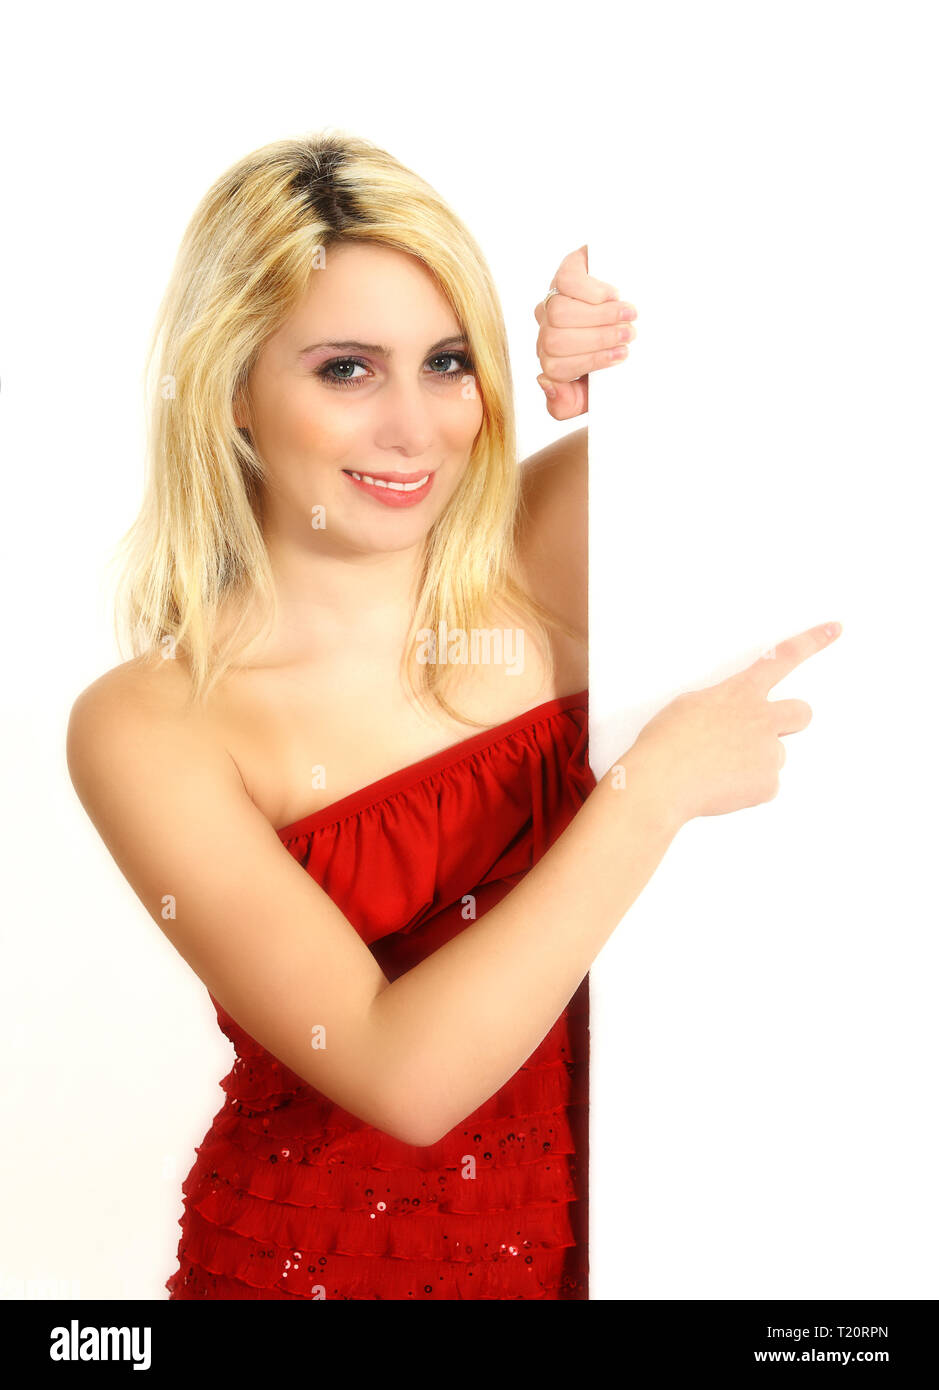 A young woman points her finger at a white free surface. Isolated against a white background. Ideal for presentations. - Stock Image